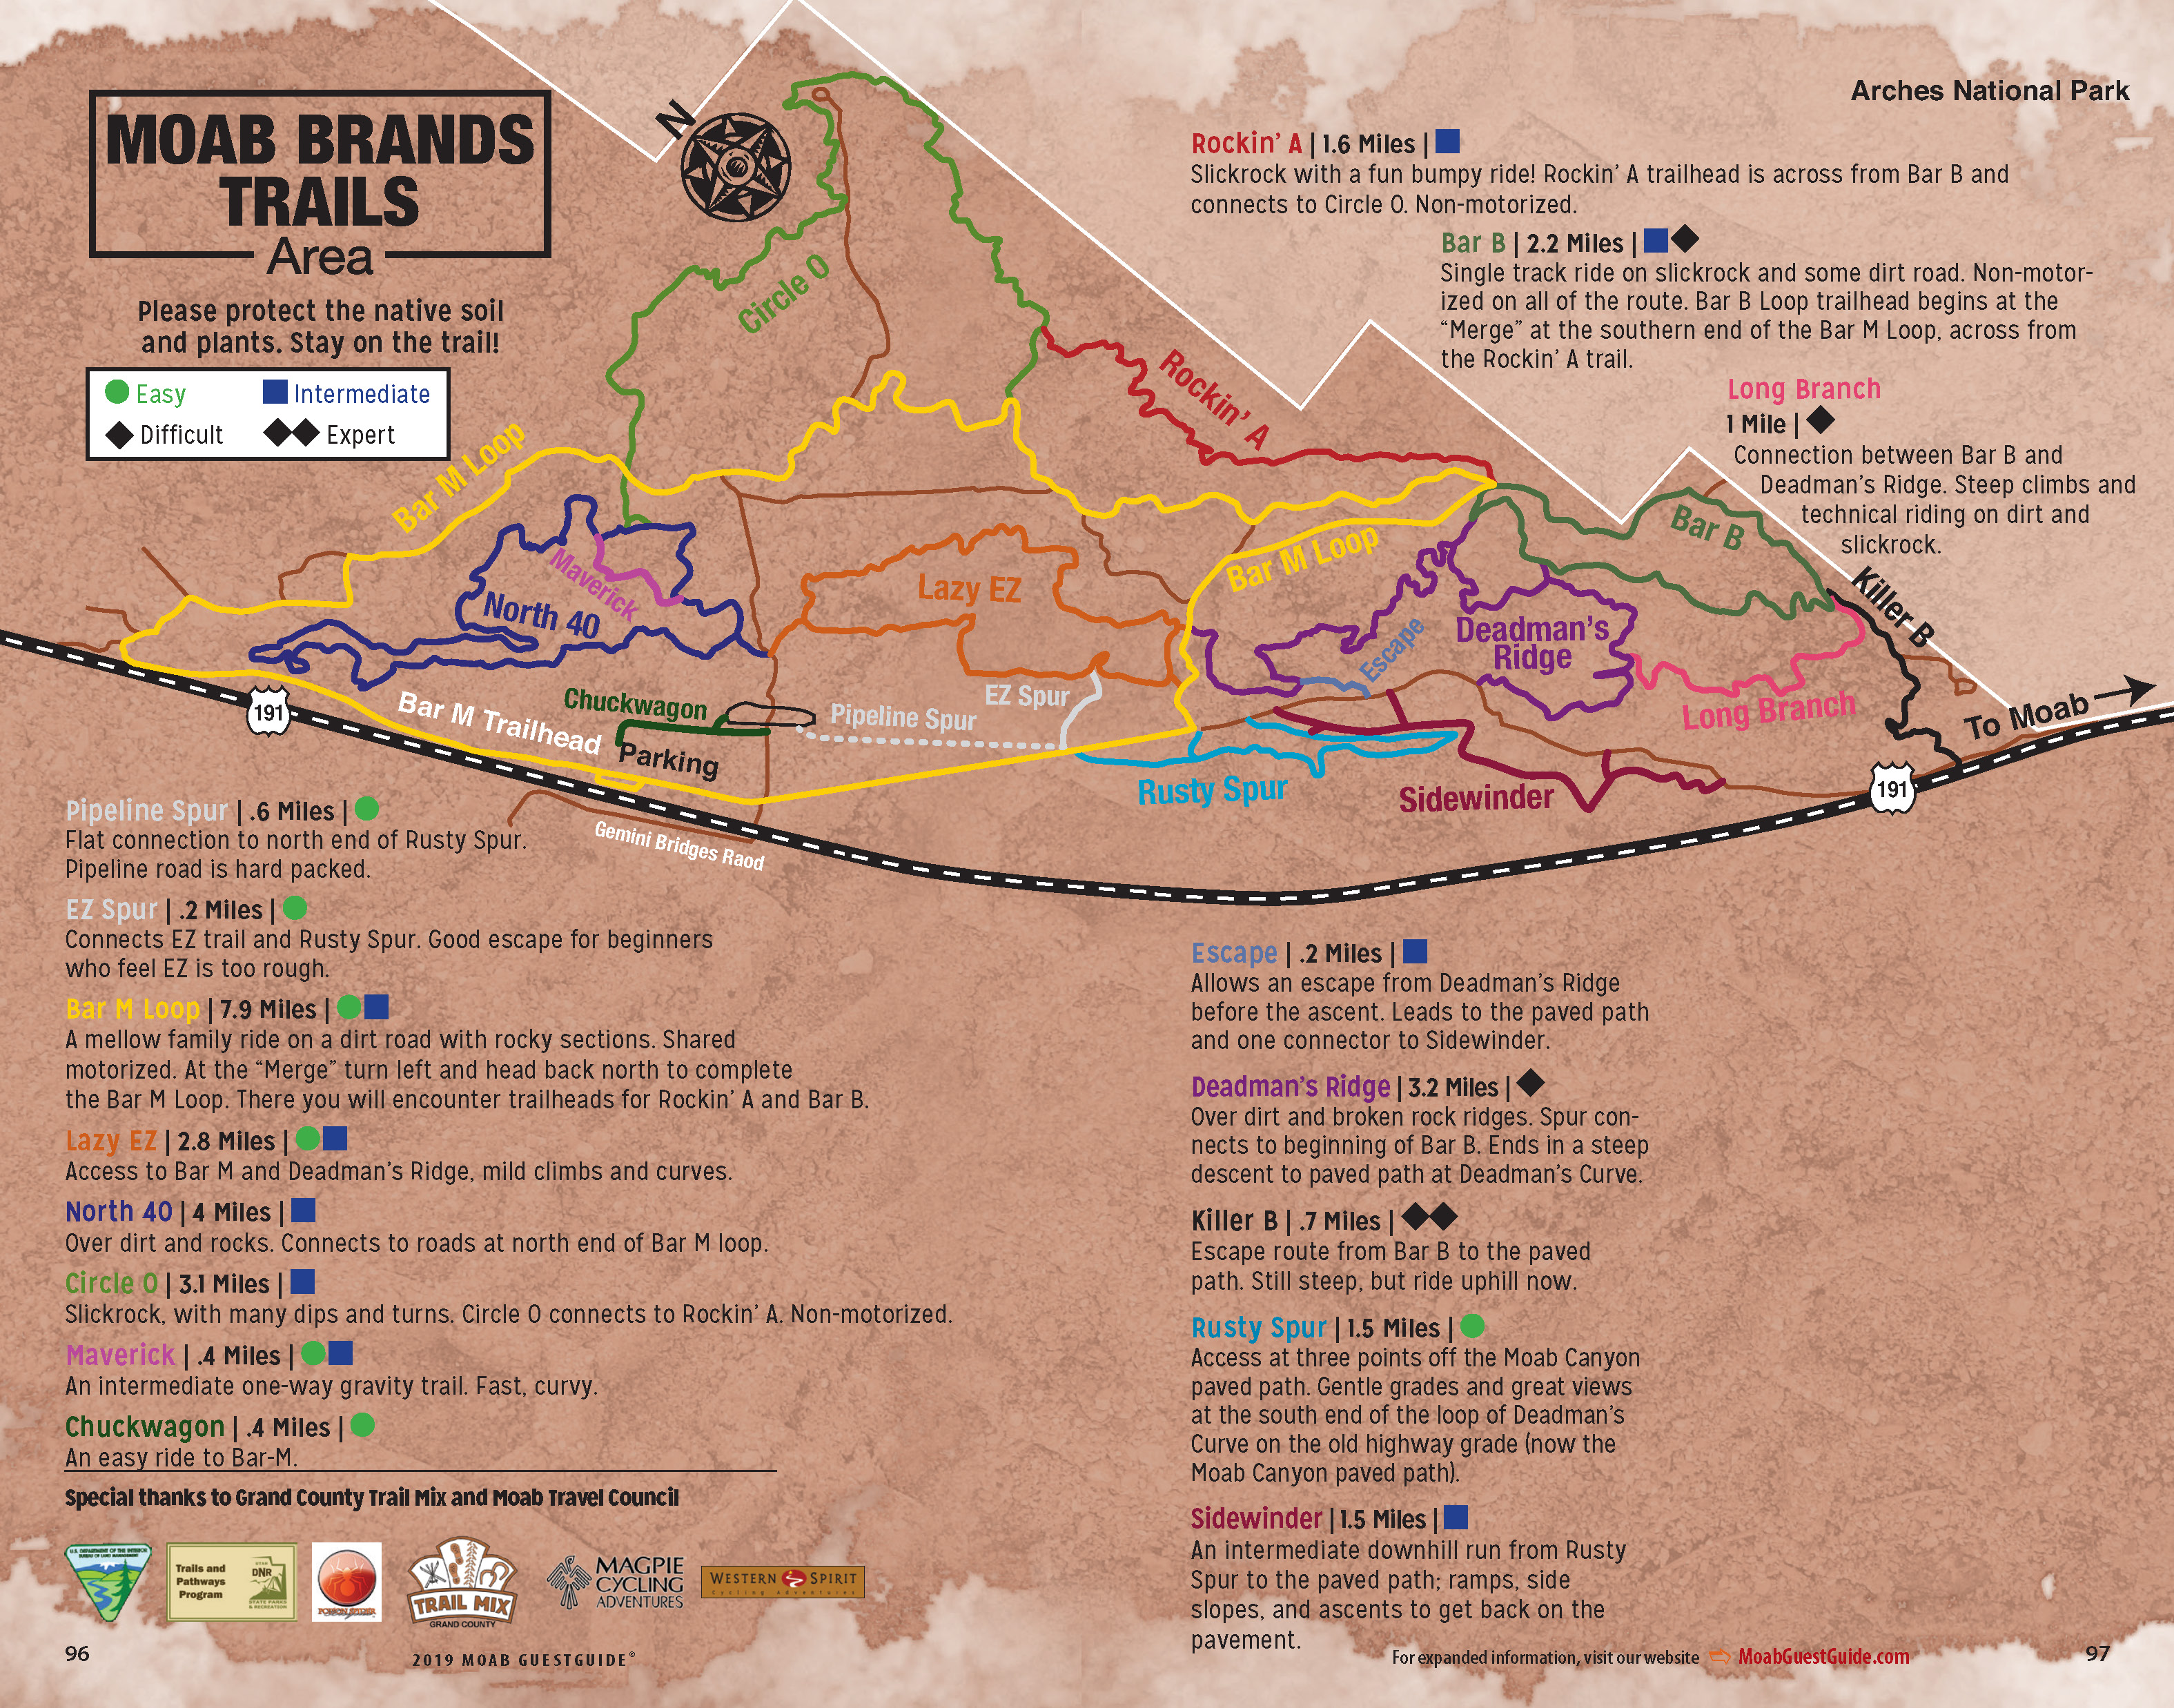 Moab Trail Maps for Hiking, Biking and 4x4 | GuestGuide Publications